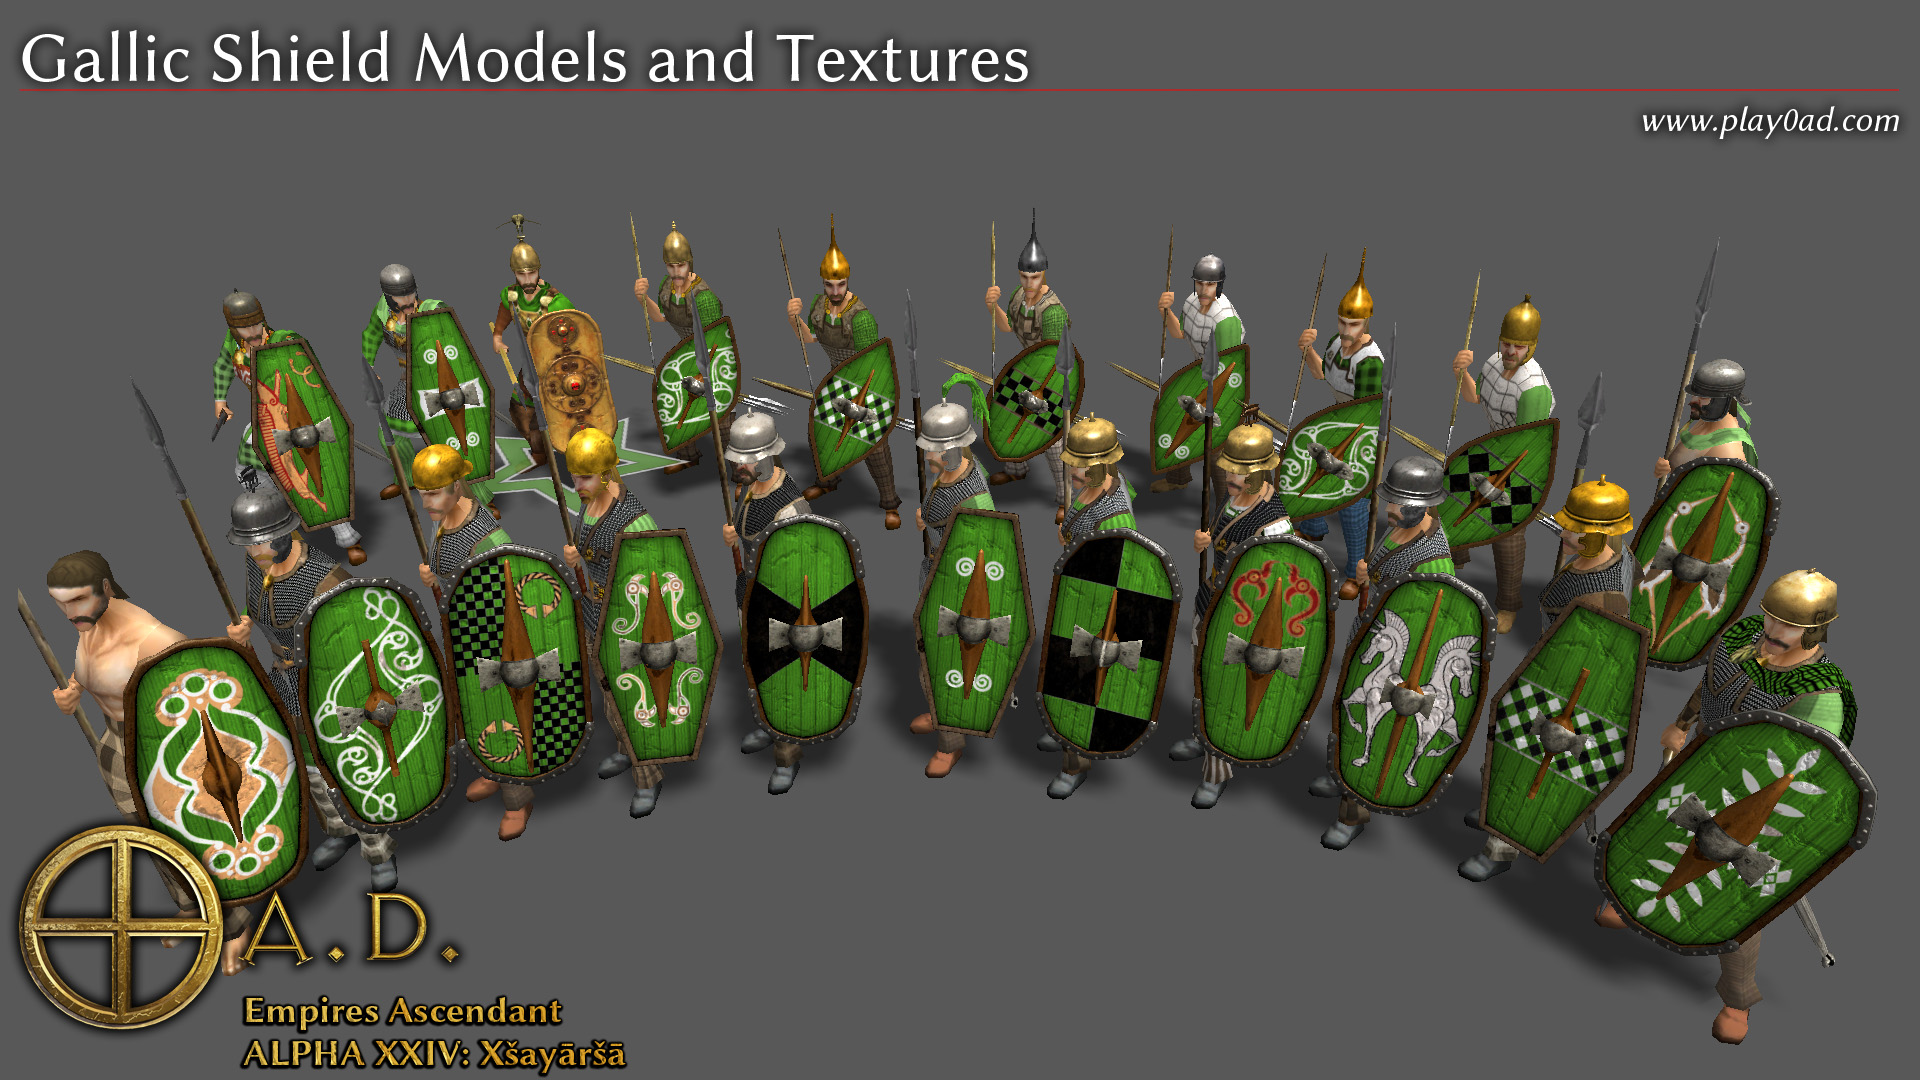 Gallic Shield Models and Textures